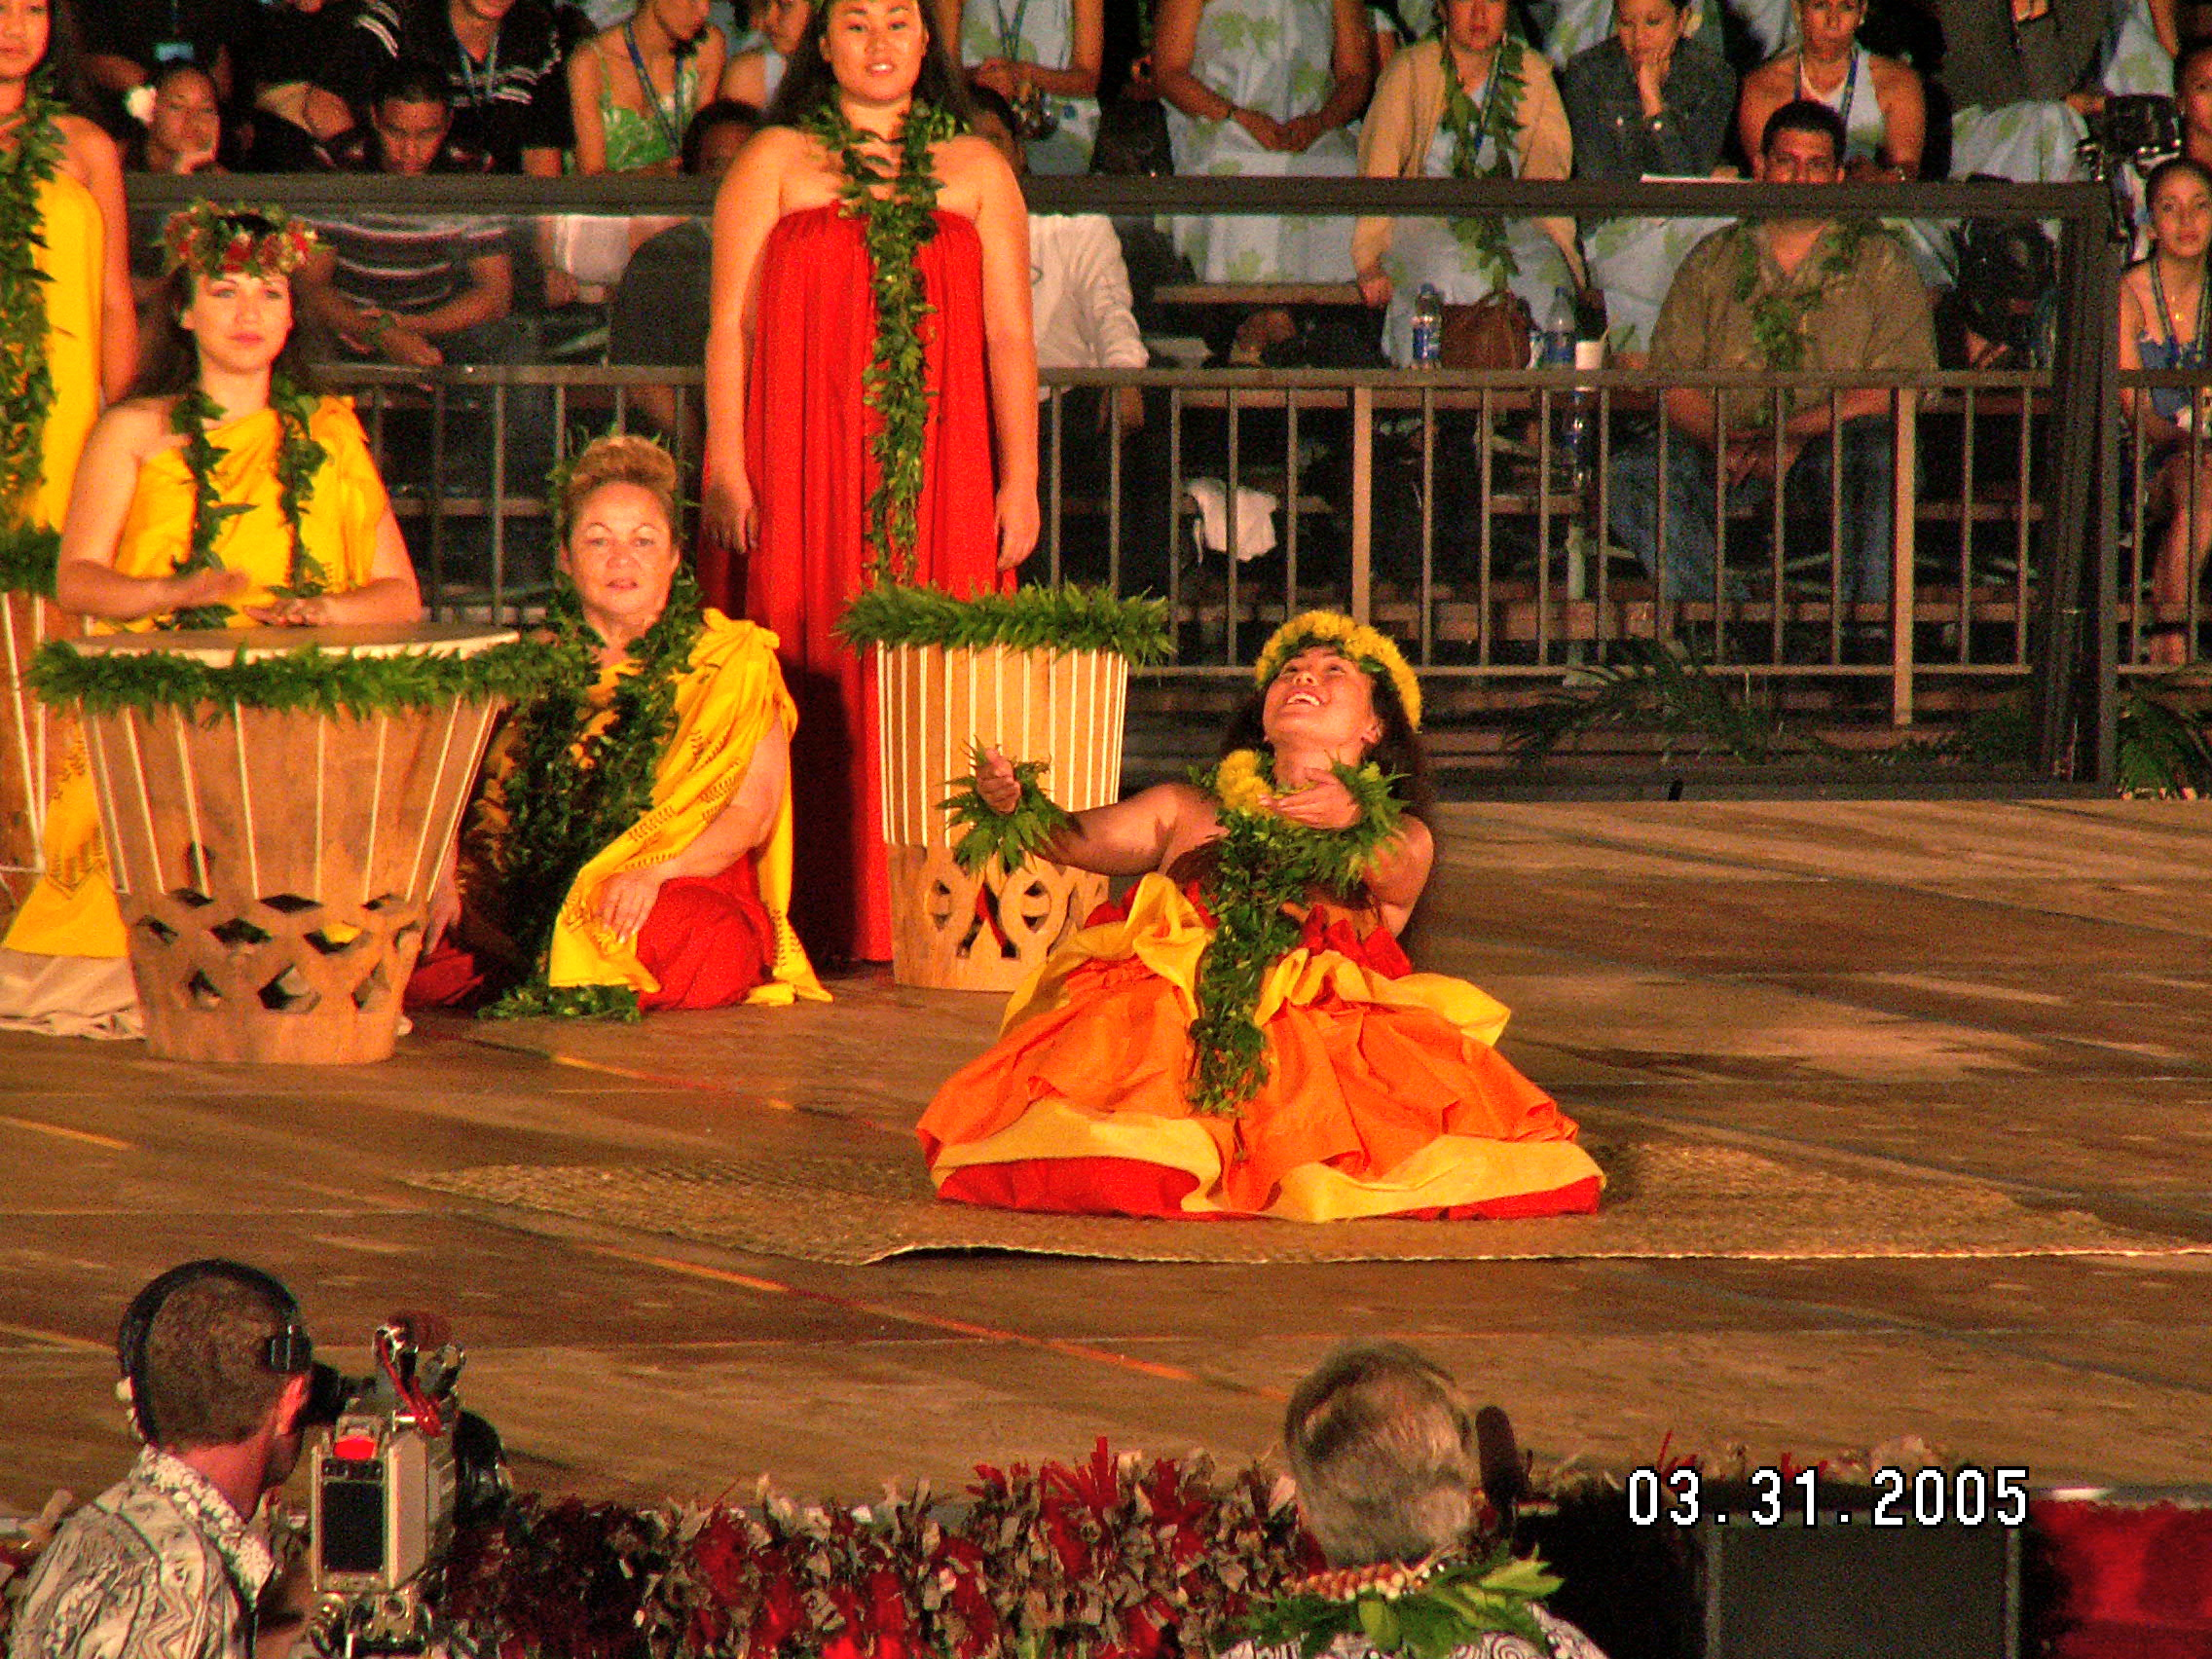 Welcome reel: photos over the years capturing various moments of our halau journey.